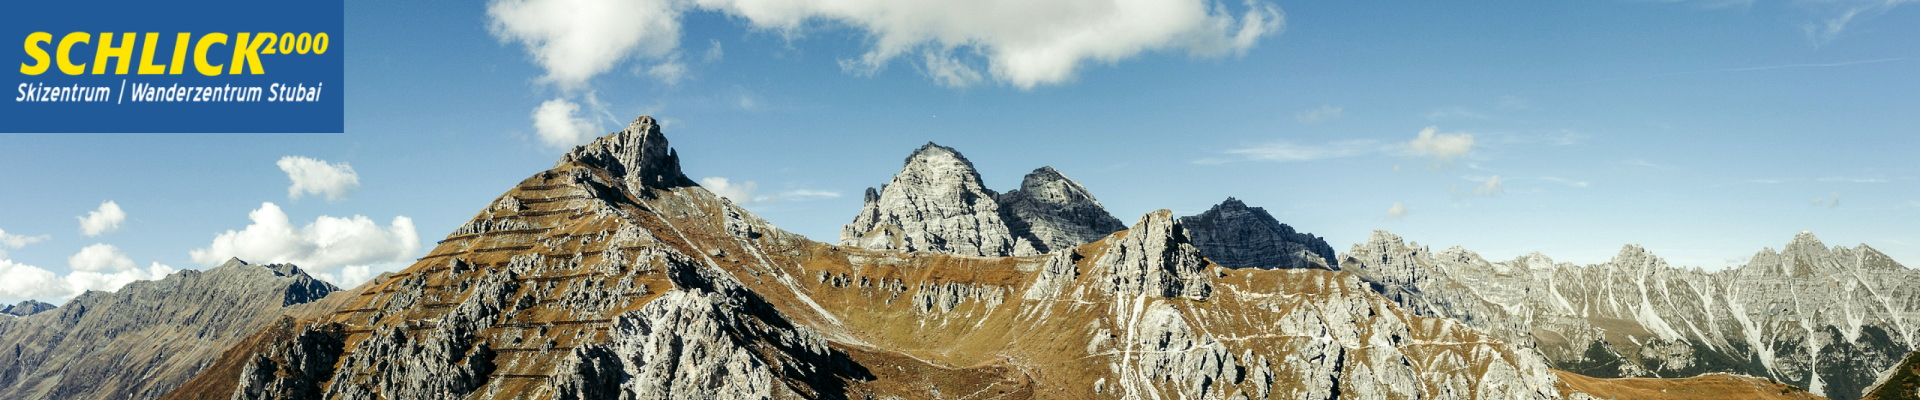 Mountain peaks in the Schlick2000